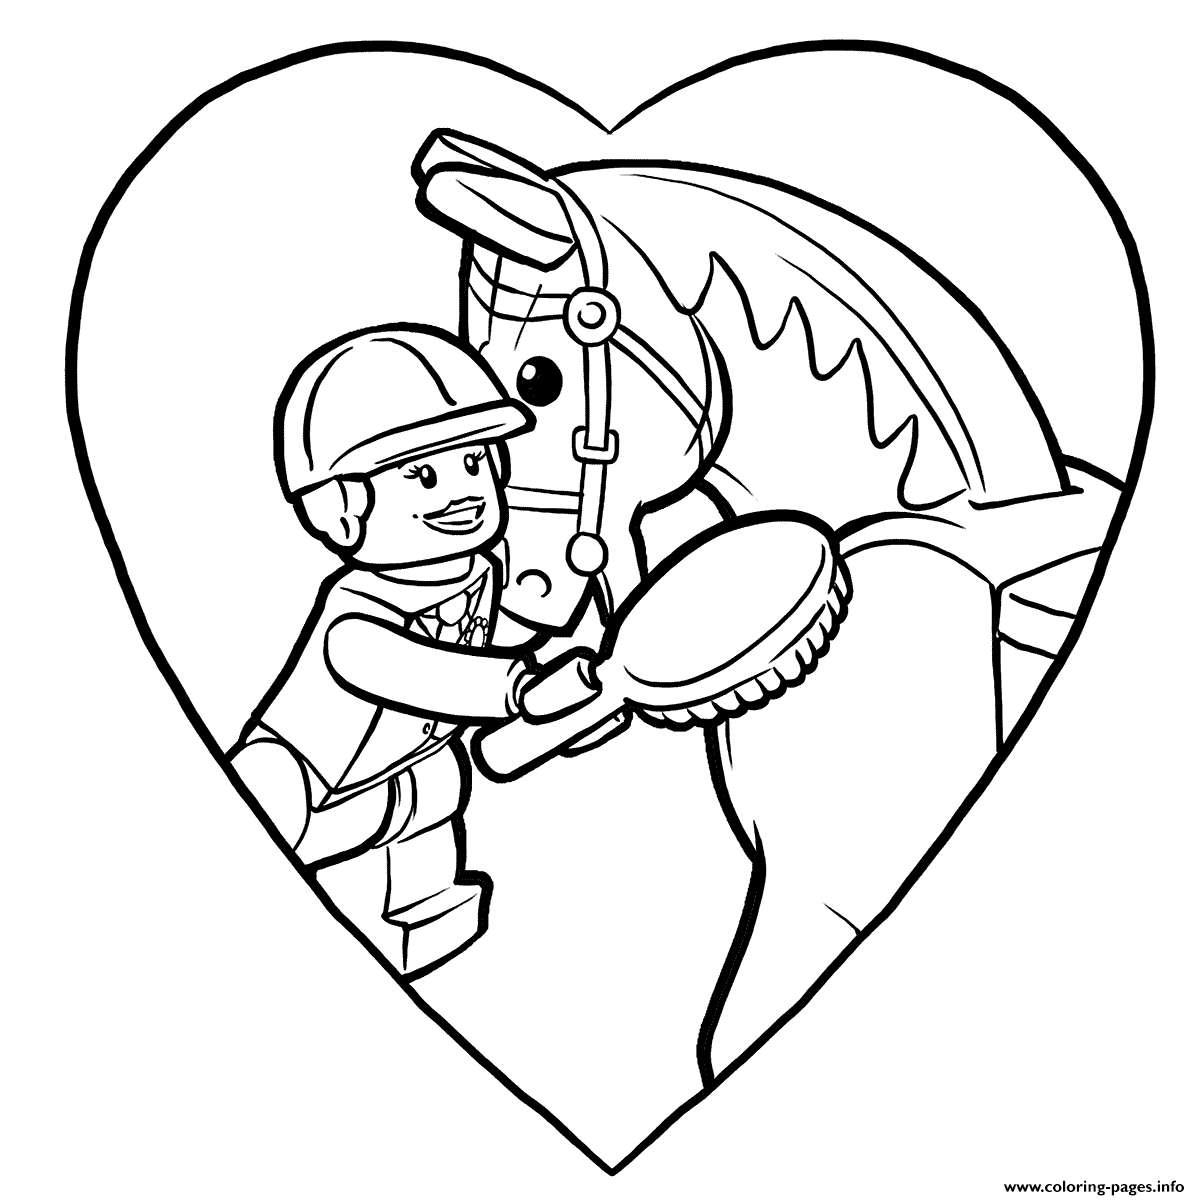 Lego Pony Pals coloring pages